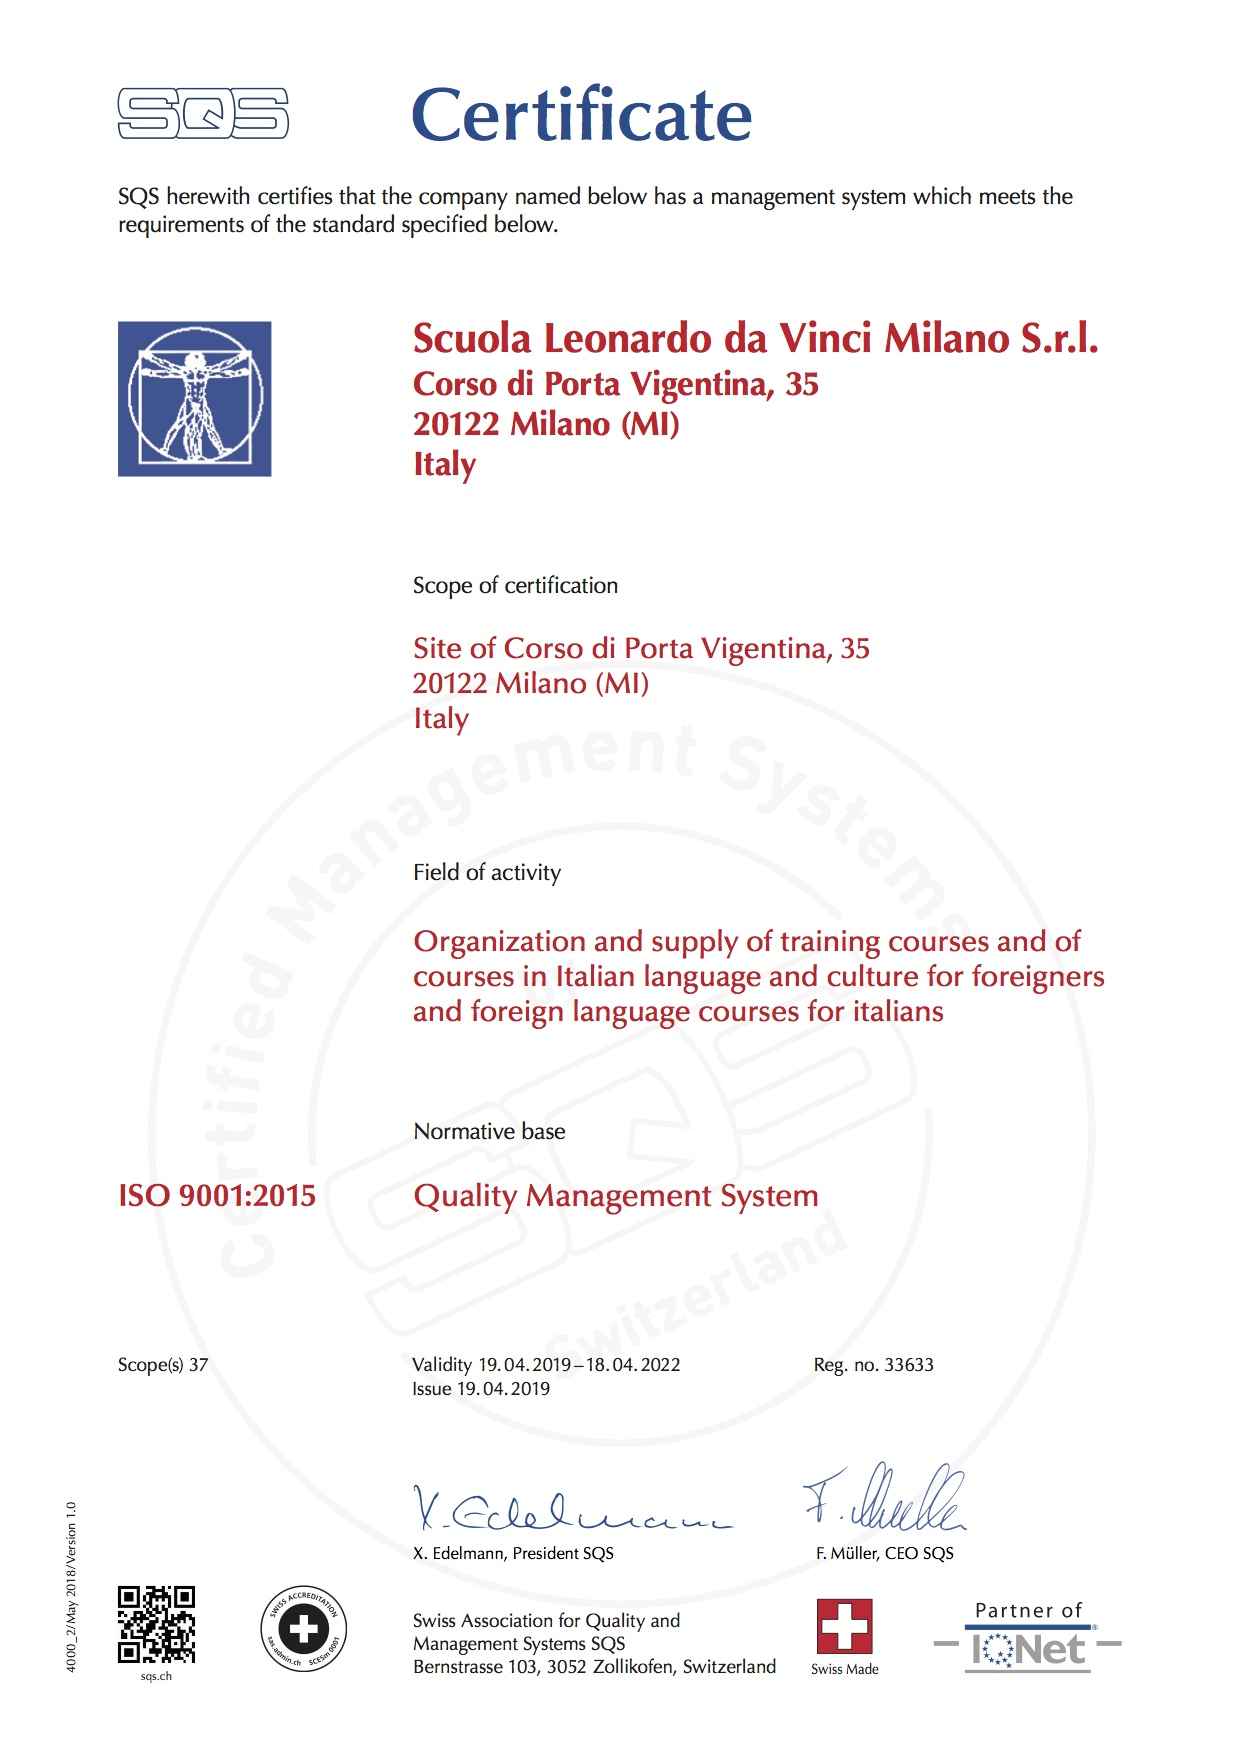 Our Italian school in Milan is certified to meet ISO 9001:2015, the internationally recognized standard for quality management systems